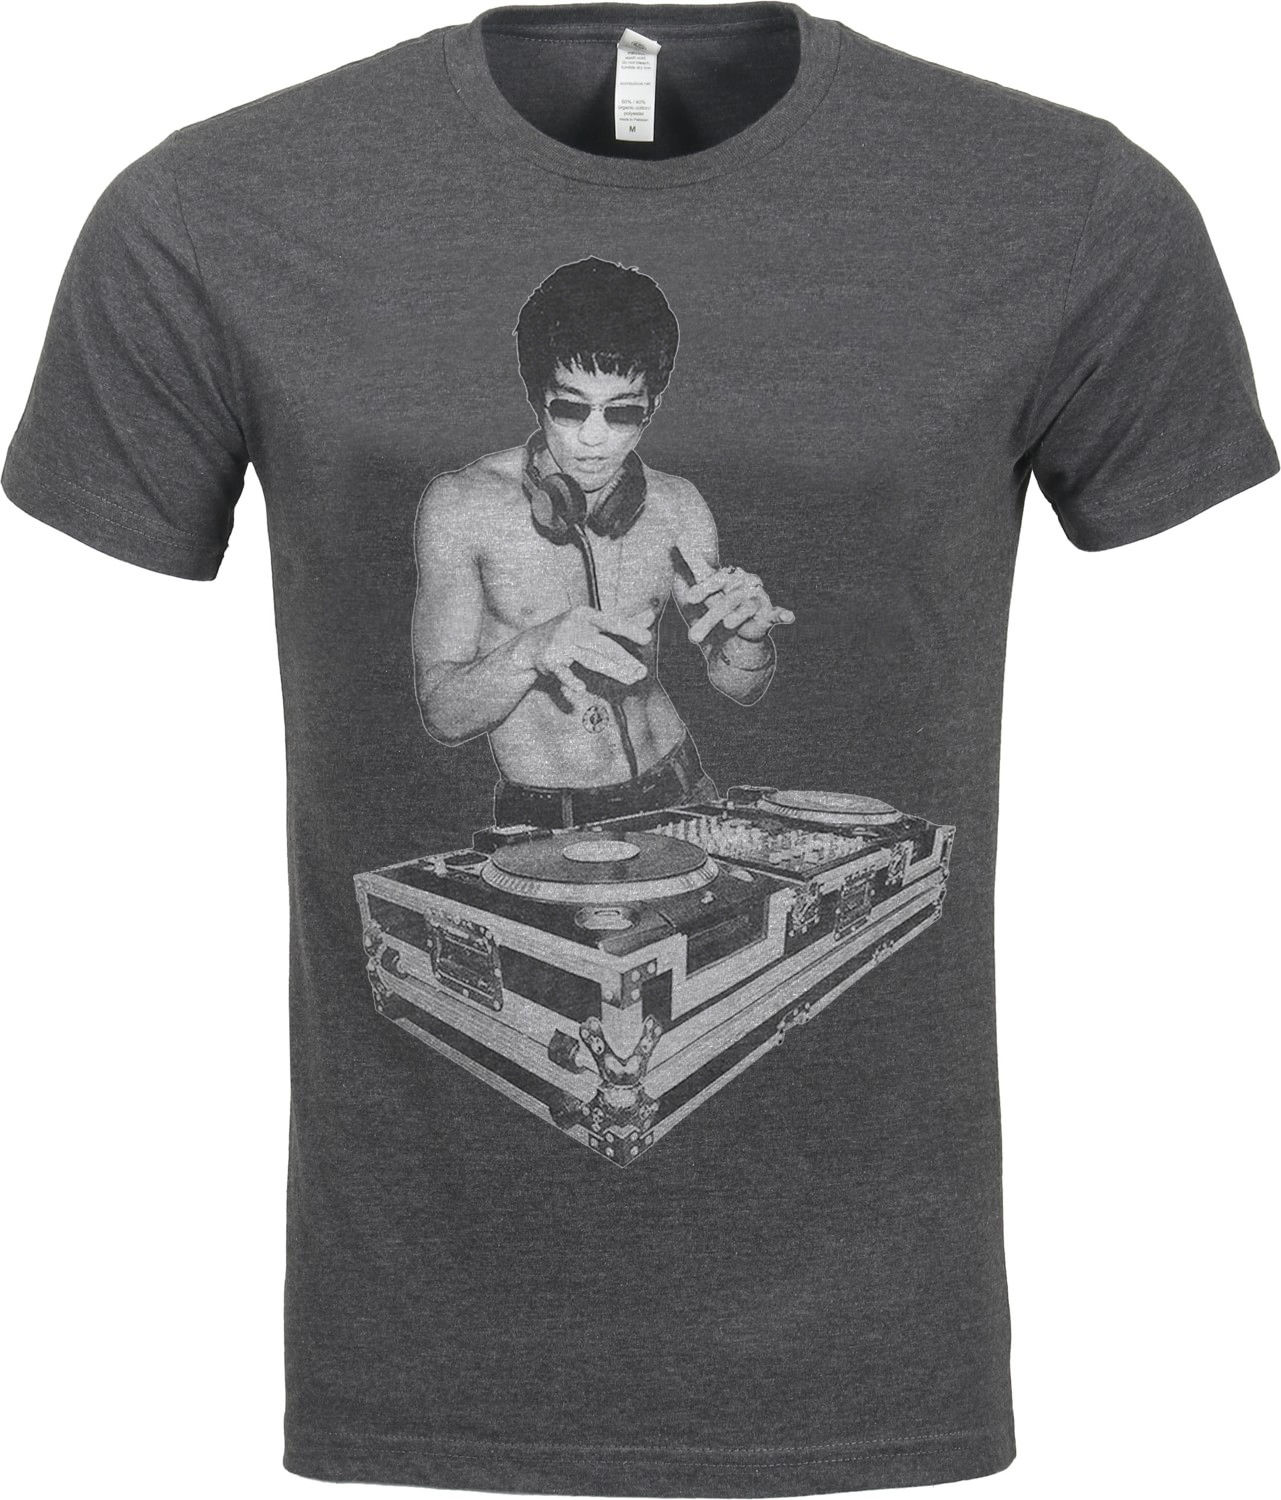 DJ Bruce Lee Worn By Tony Stark Avengers Movie Mens Charcoal T Shirt